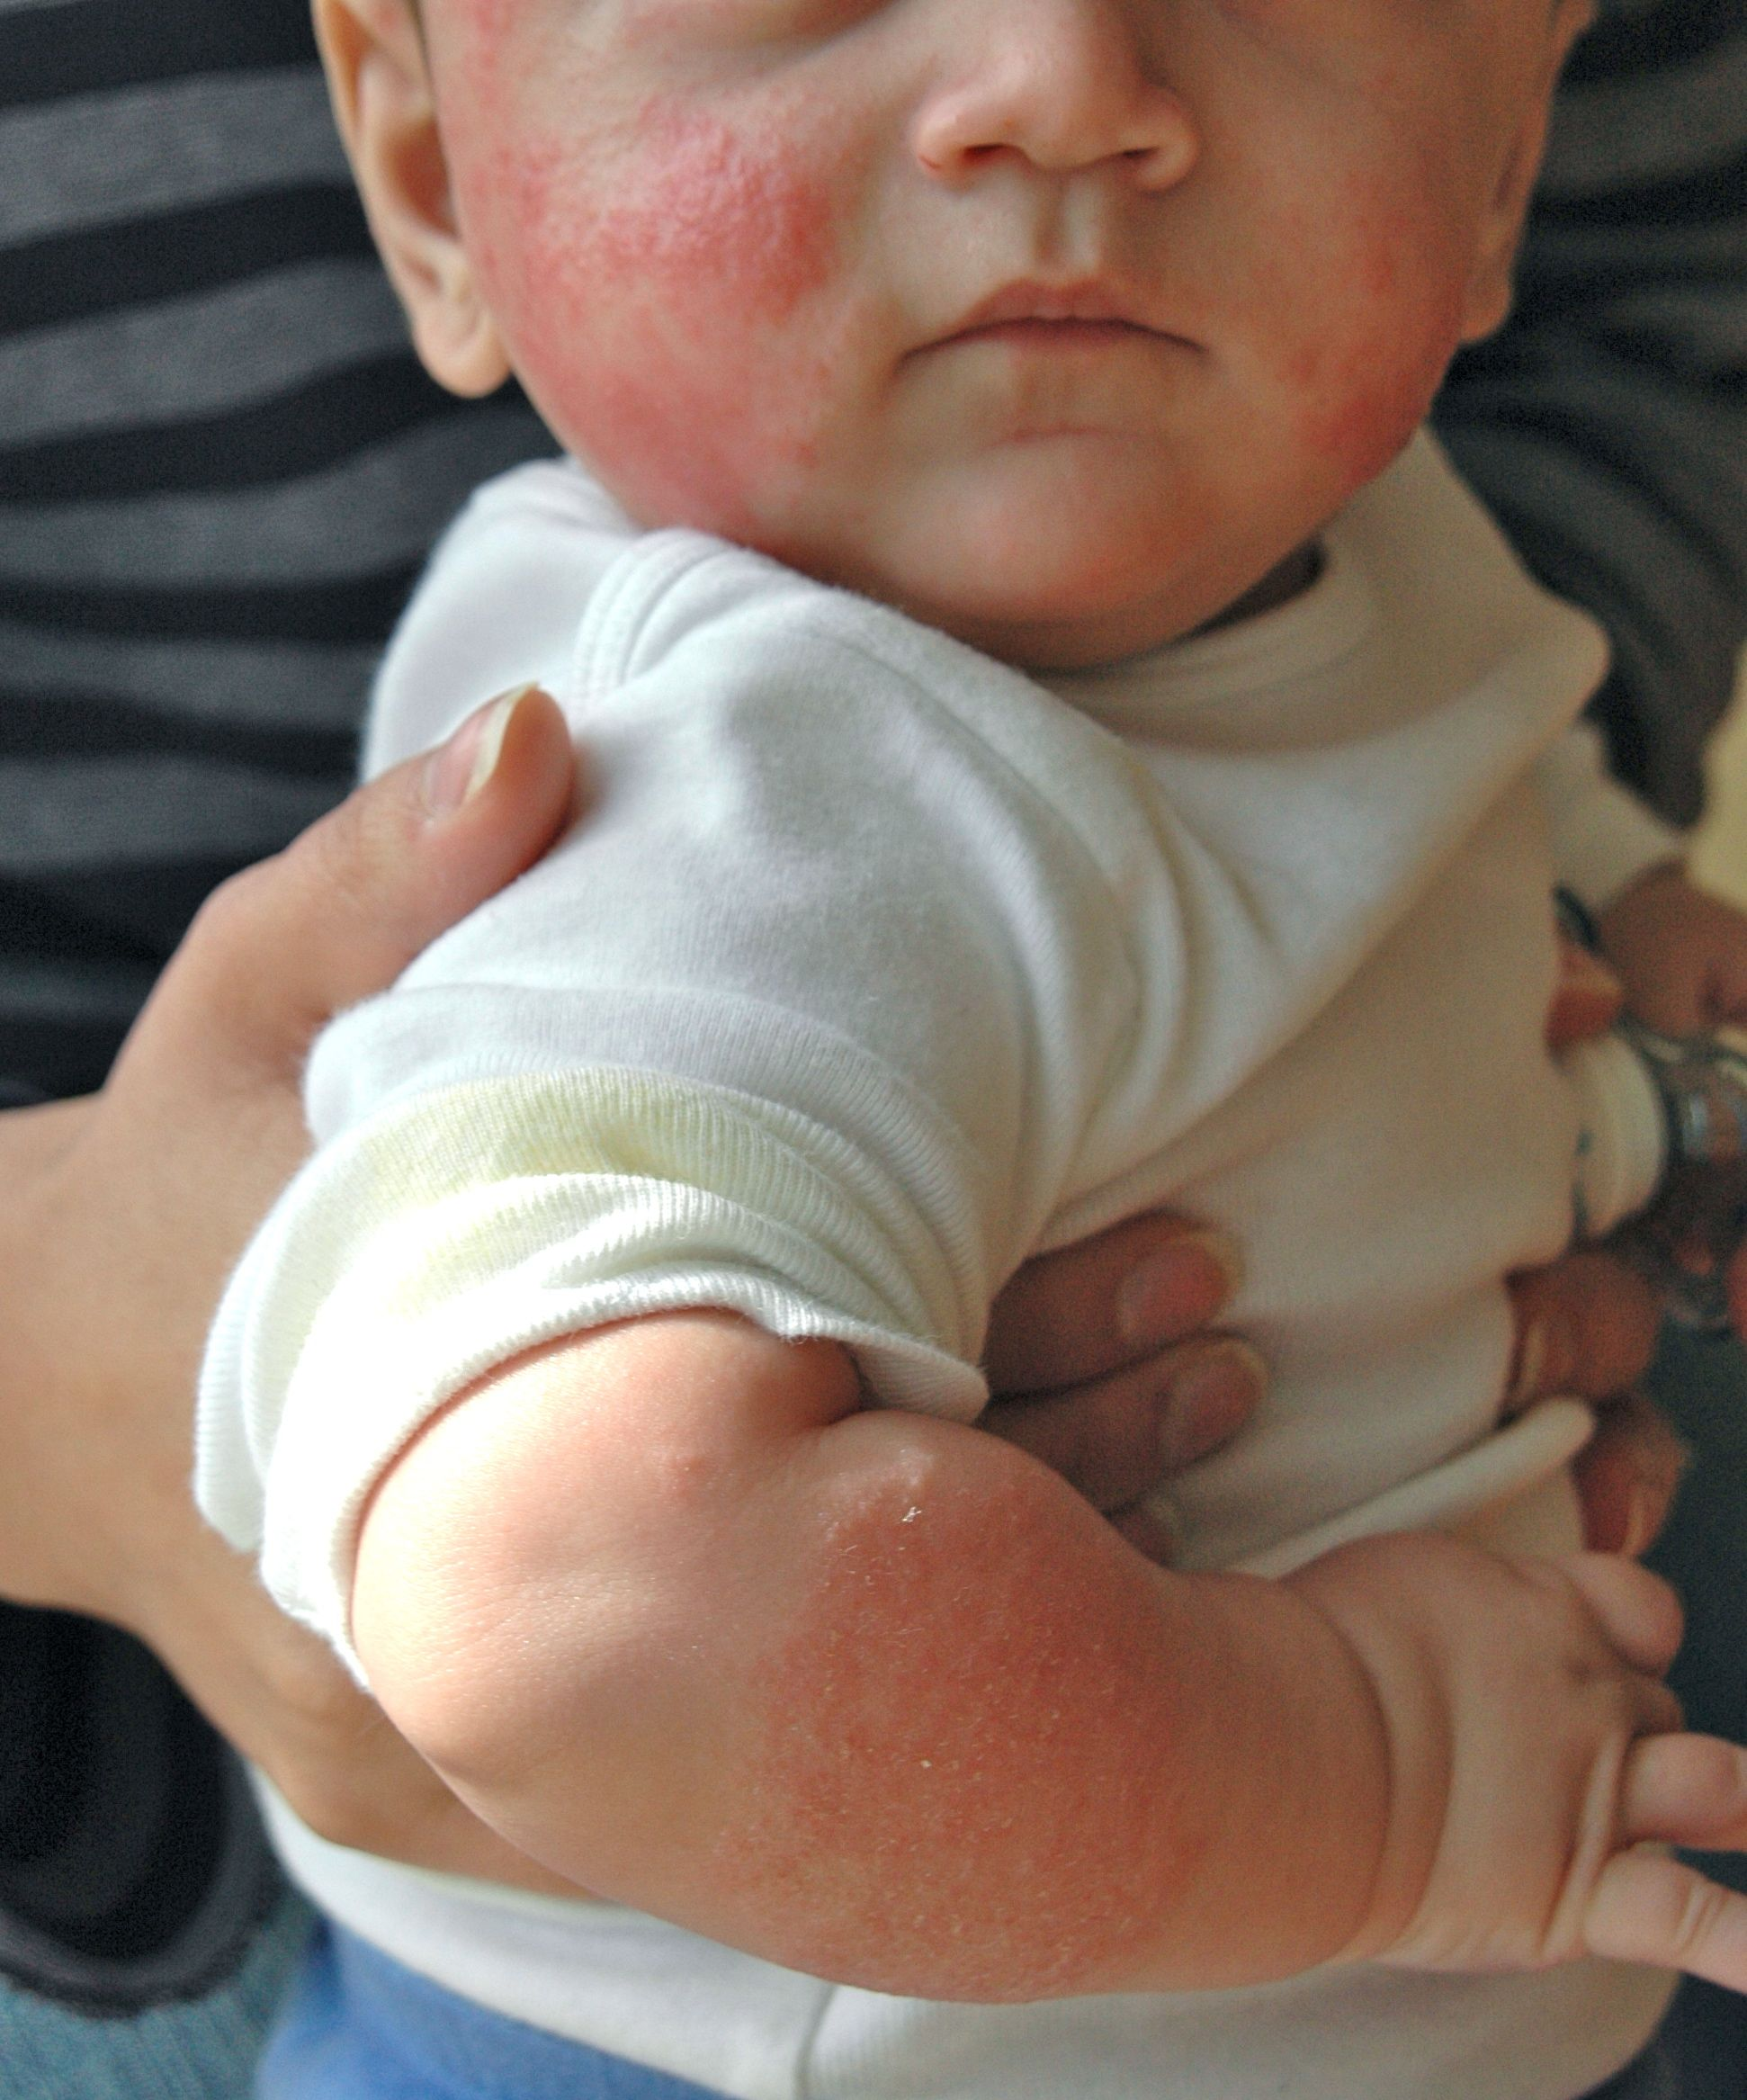 Cow S Milk Allergy Manifested As Atopic Dermatitis Eczema